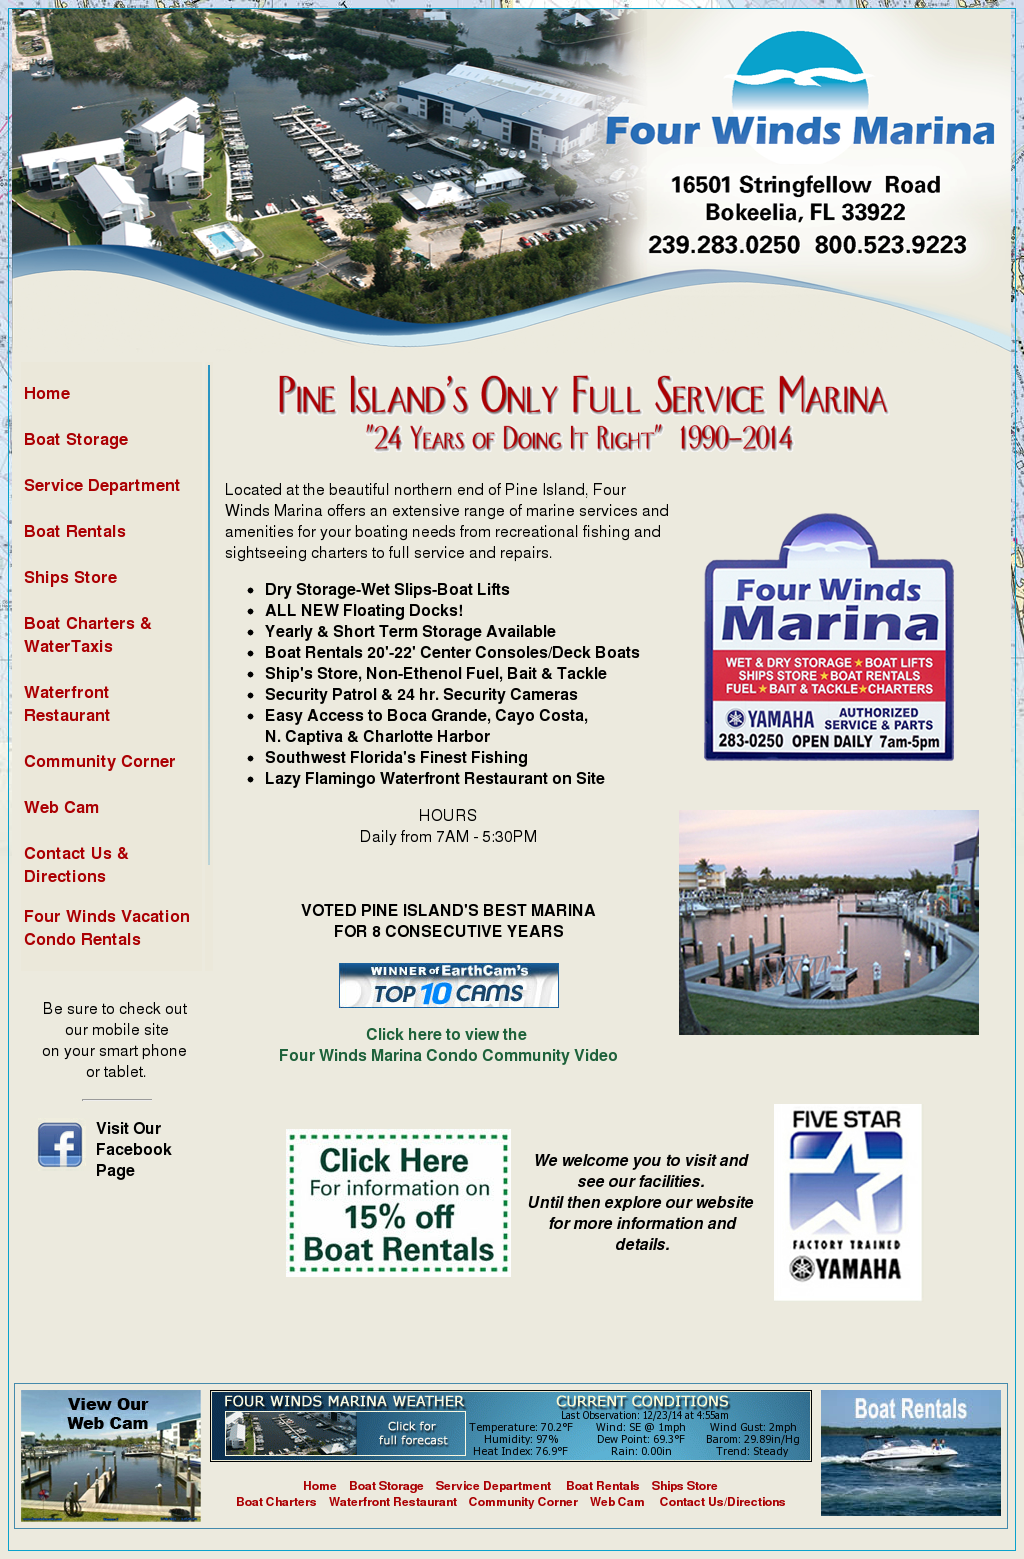 Four Winds Marina Competitors, Revenue and Employees - Owler